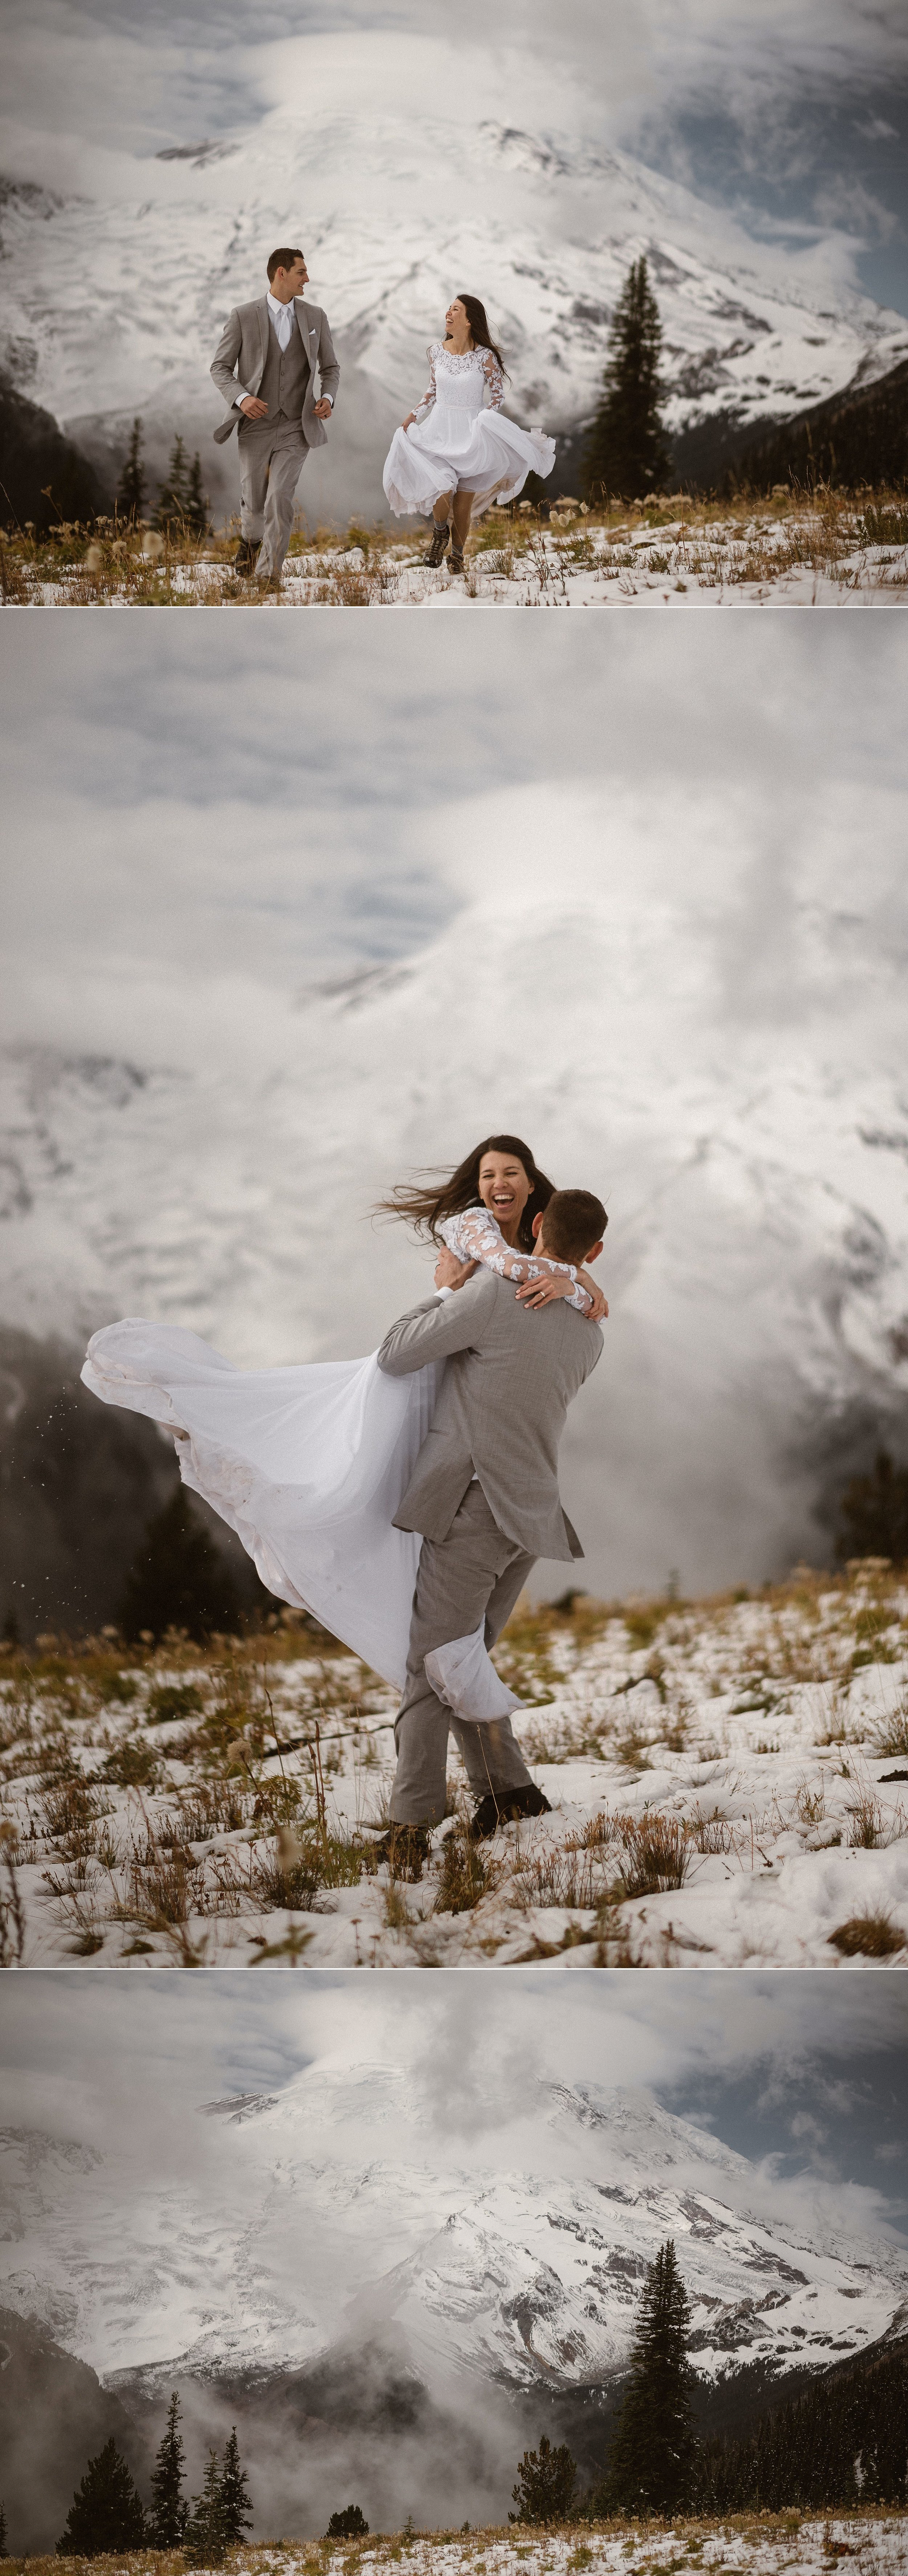 She jumped playfully into his arms one last time as the fog rolled in on the mountains of Mount Rainier National Park where they had just spent their elopement day in the forest and hiking through the snow with no one around but their intimate elopement photographer Maddie Mae.